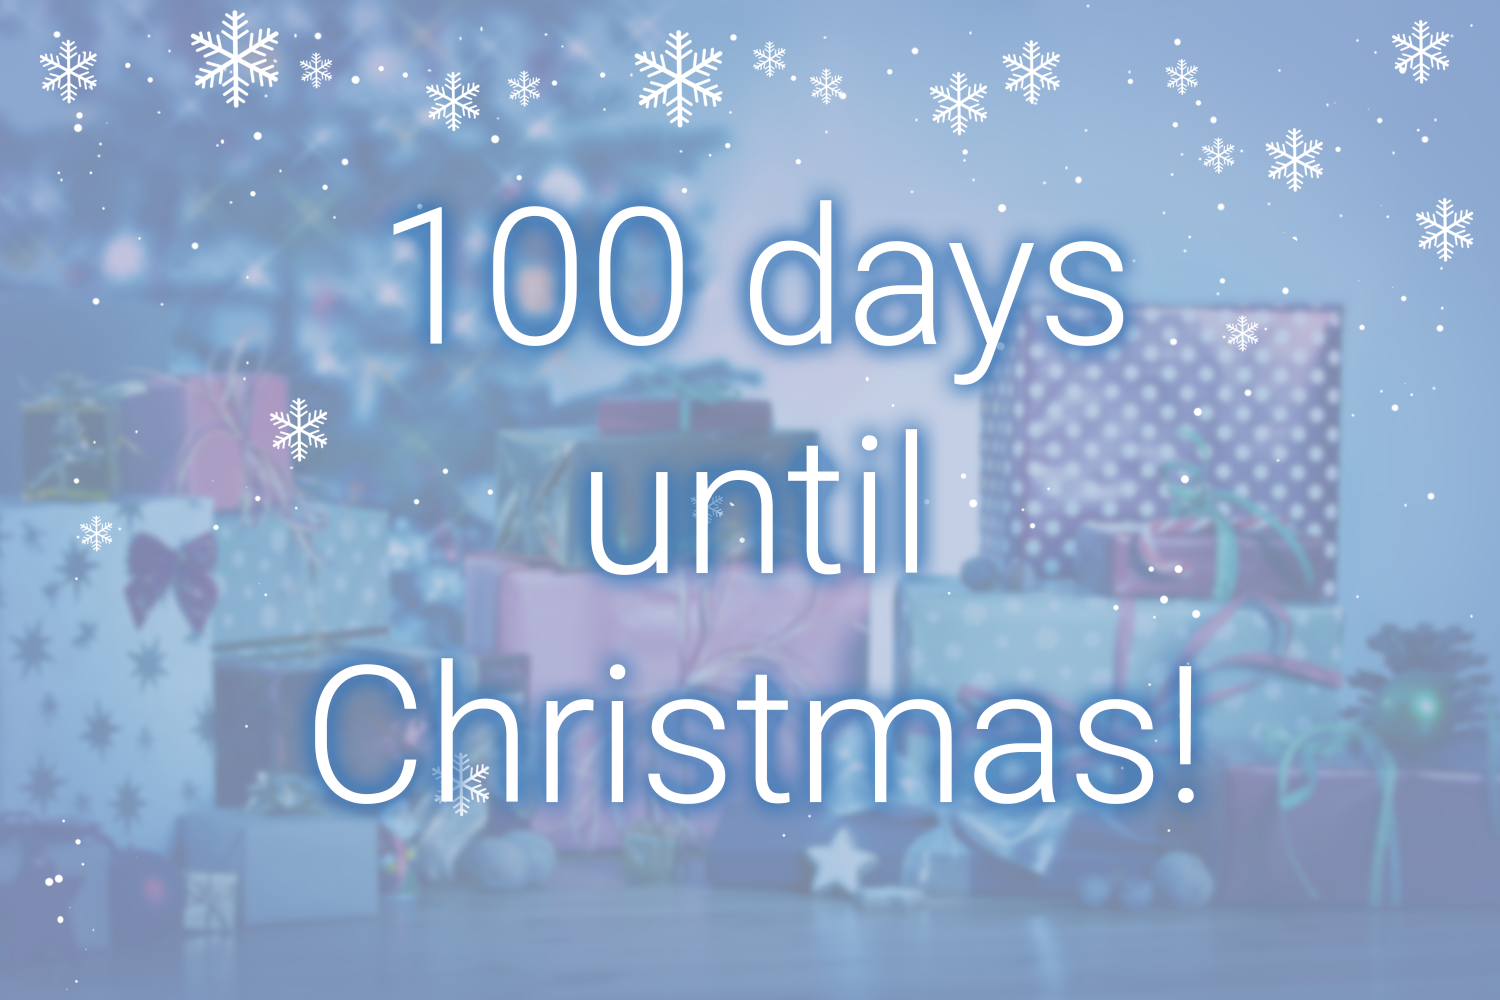 Save now - only 100 days until Christmas